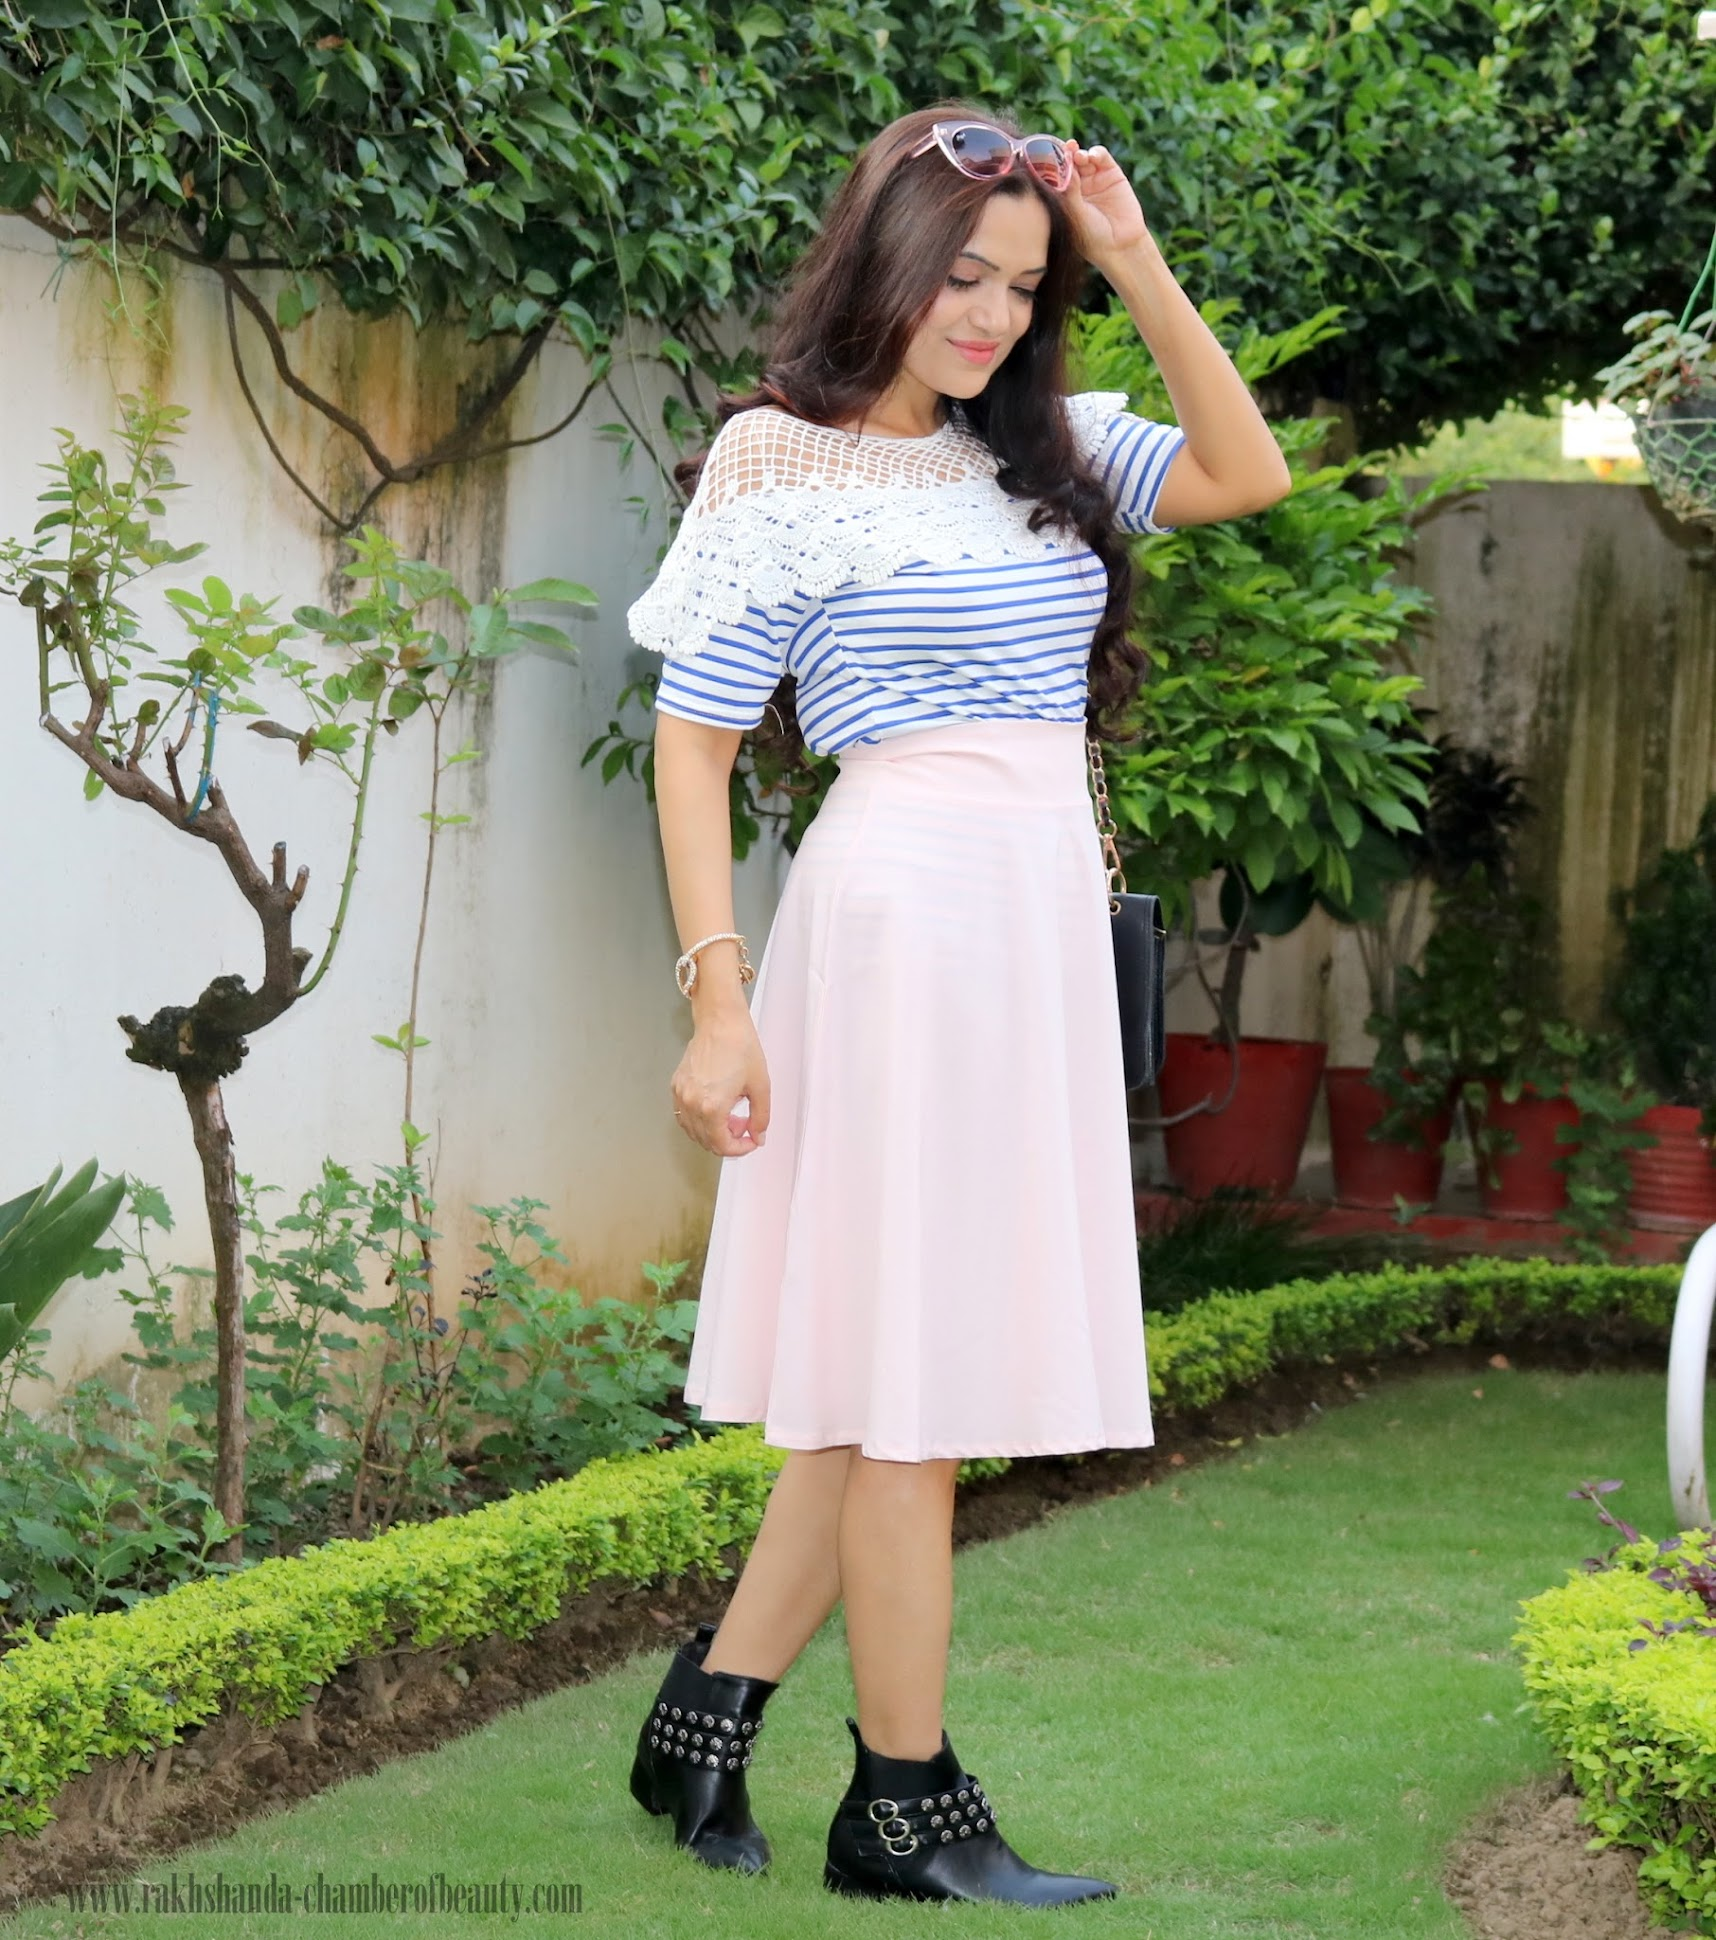 Pink Midi skirt & Striped blouse(fairly nautical) | Fall fashion trends, lovelywholesale.com, How to wear midi skirts, Indian fashion blogger, Chamber of Beauty